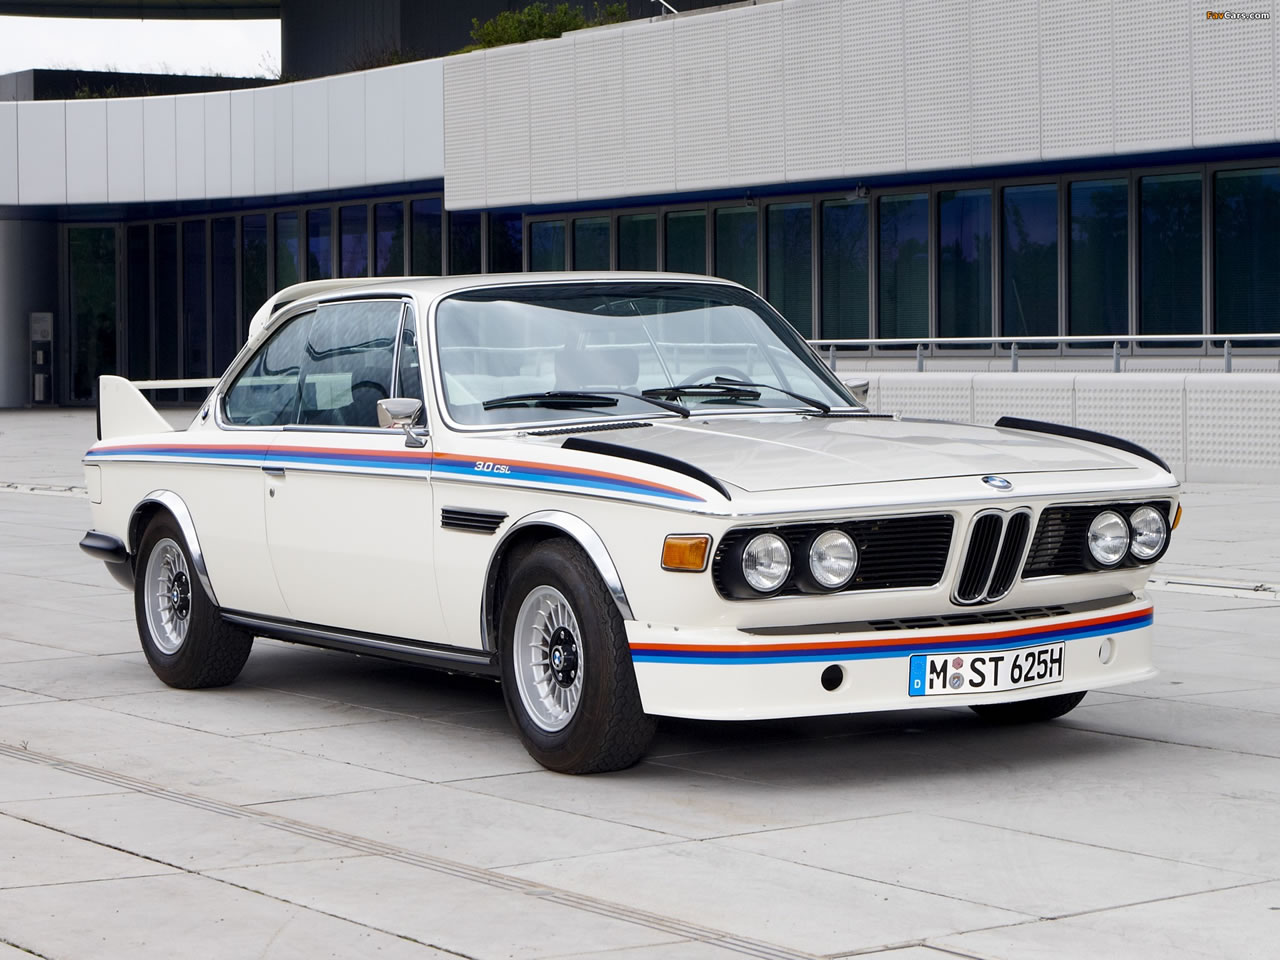 These Are The Top Five Bmw Luxury Cars Of All Time Lottery Winners